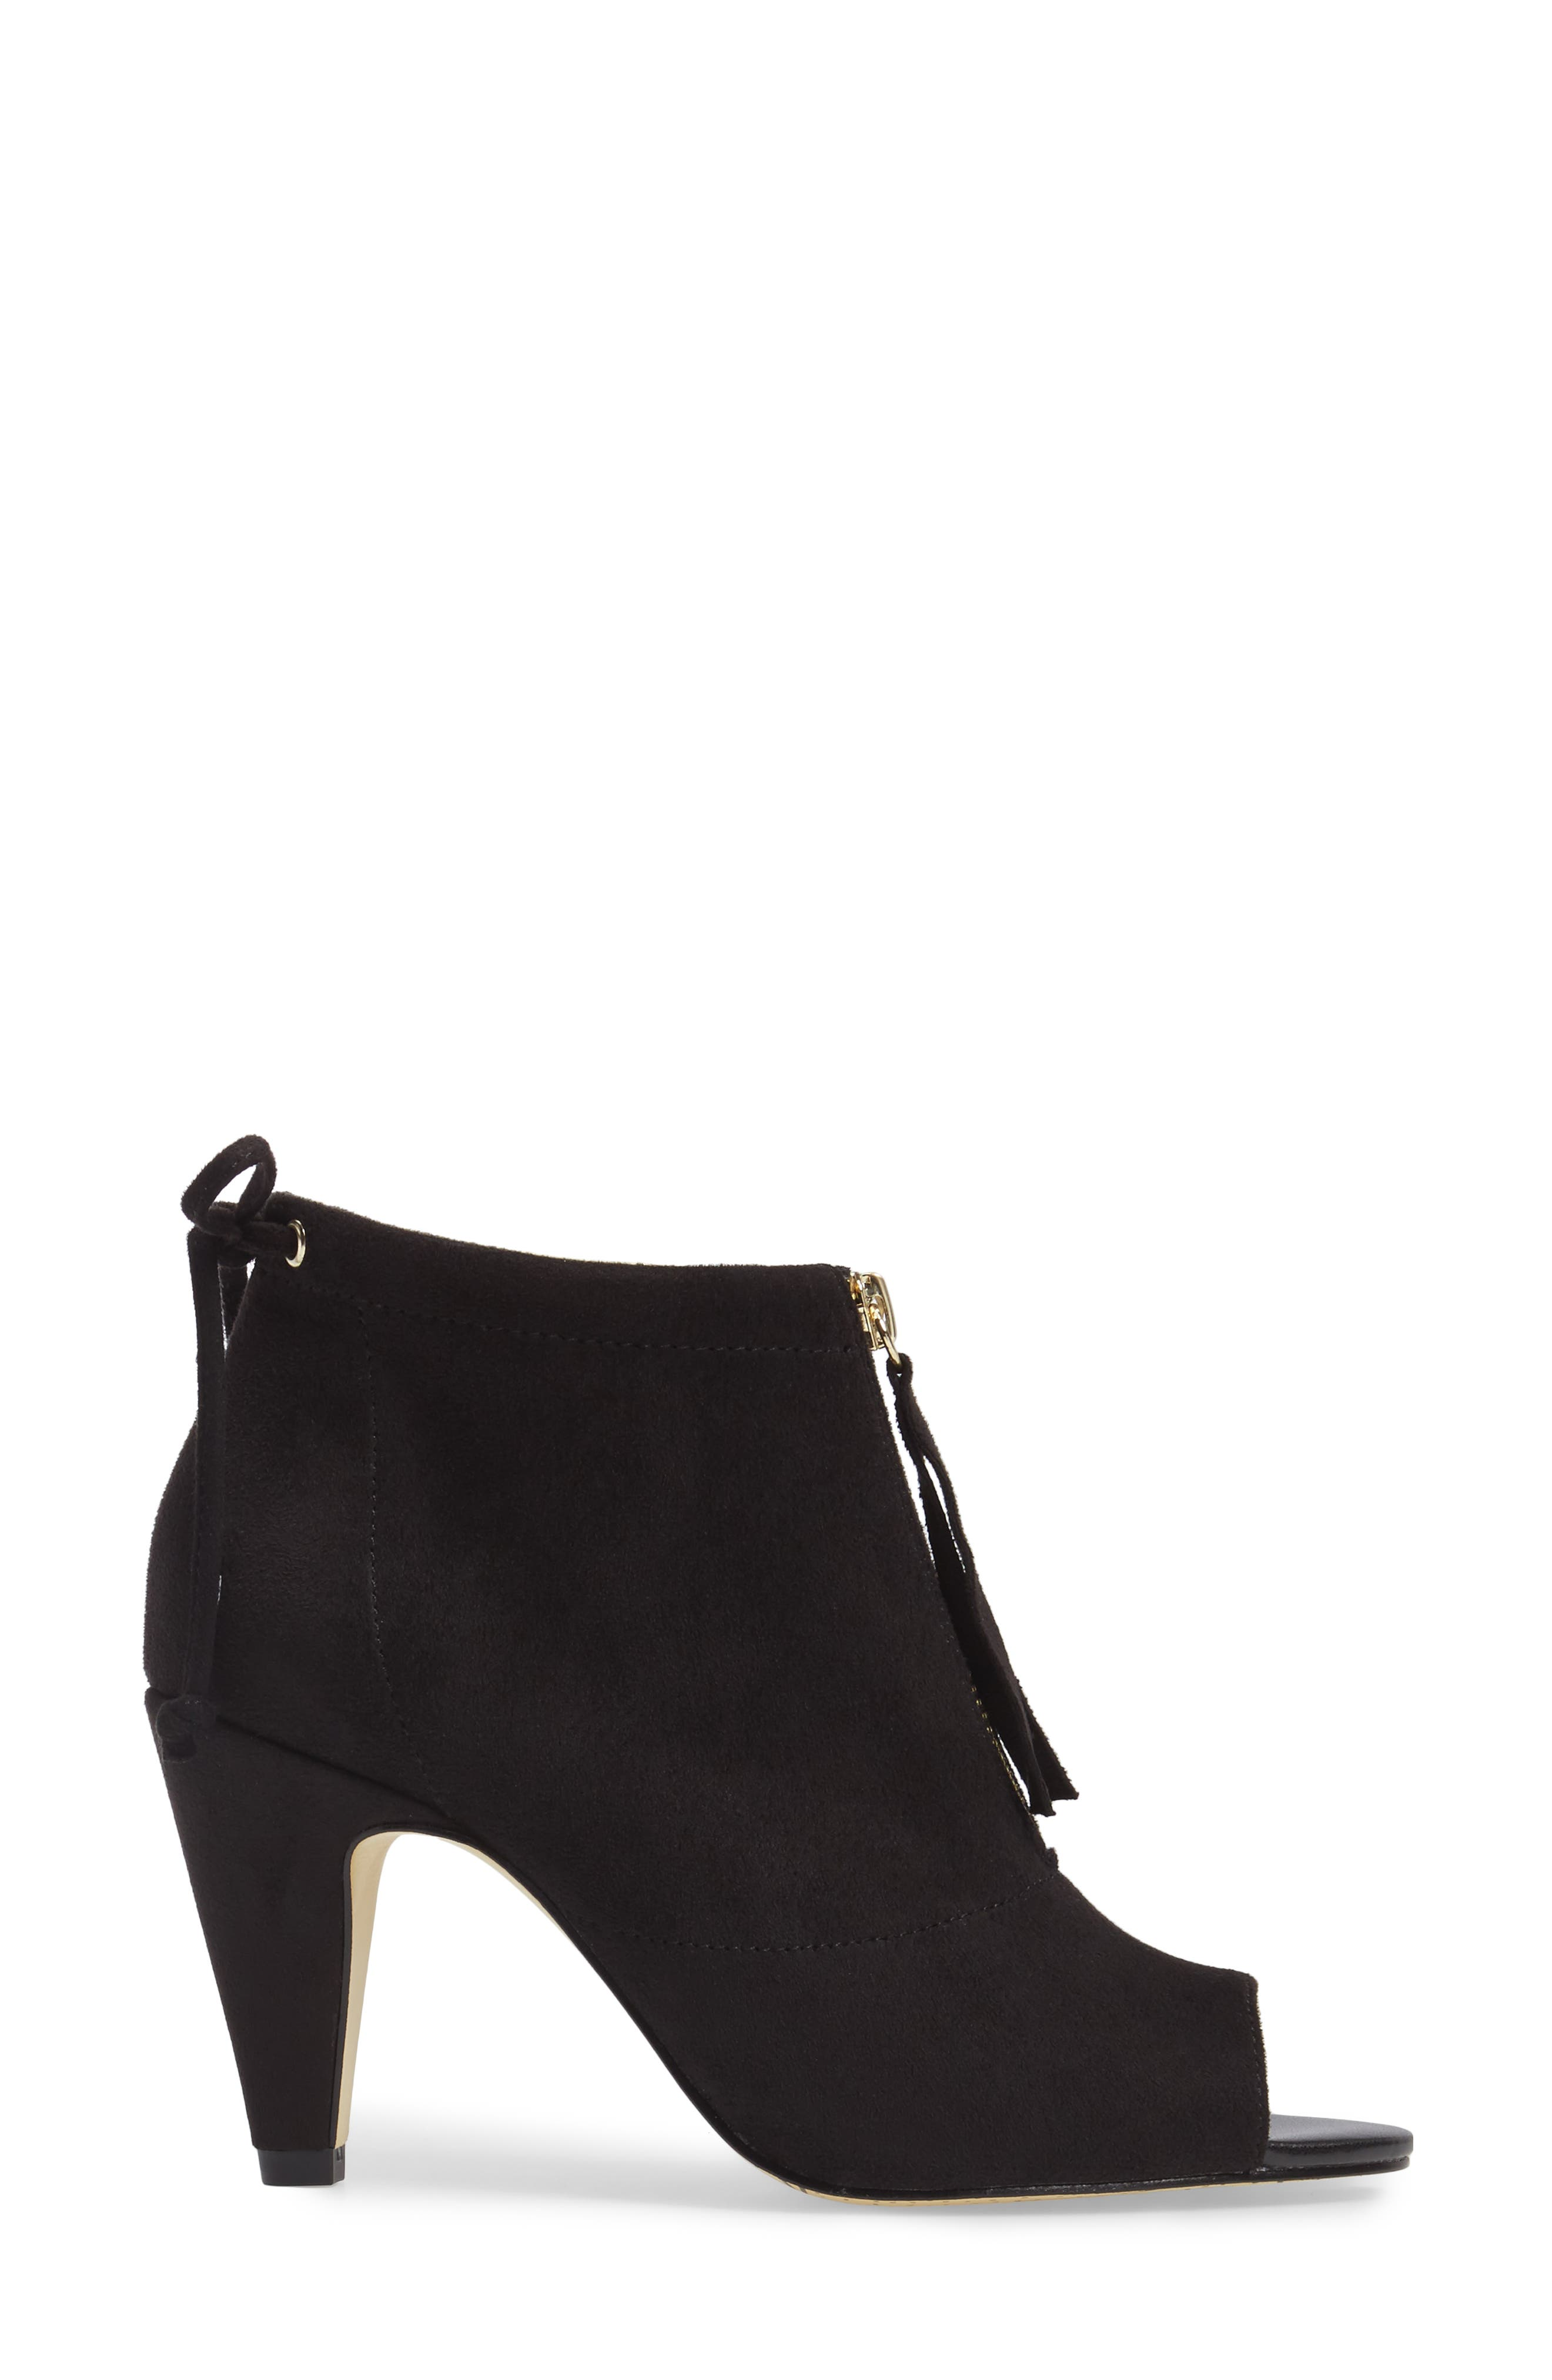 Nicky II Zip Front Bootie,                             Alternate thumbnail 3, color,                             018